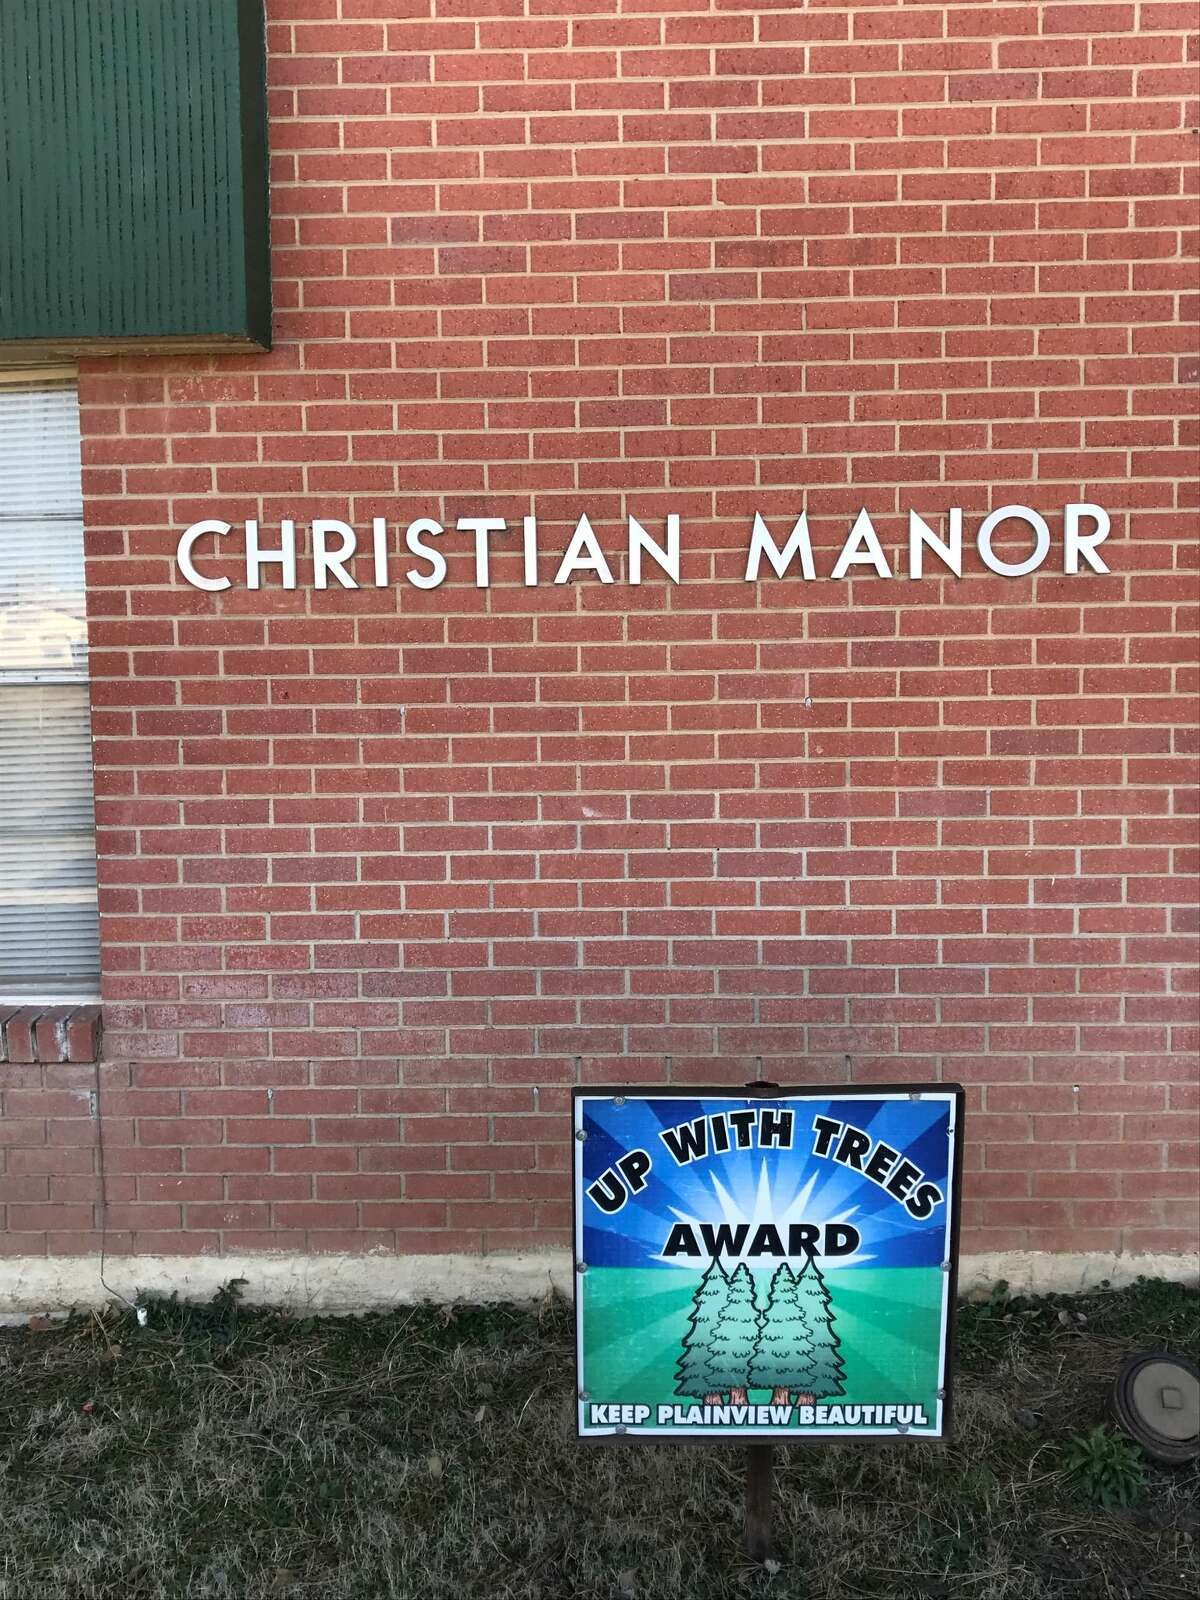 Christian Manor Apartments was recognized with the Up With Trees Award.